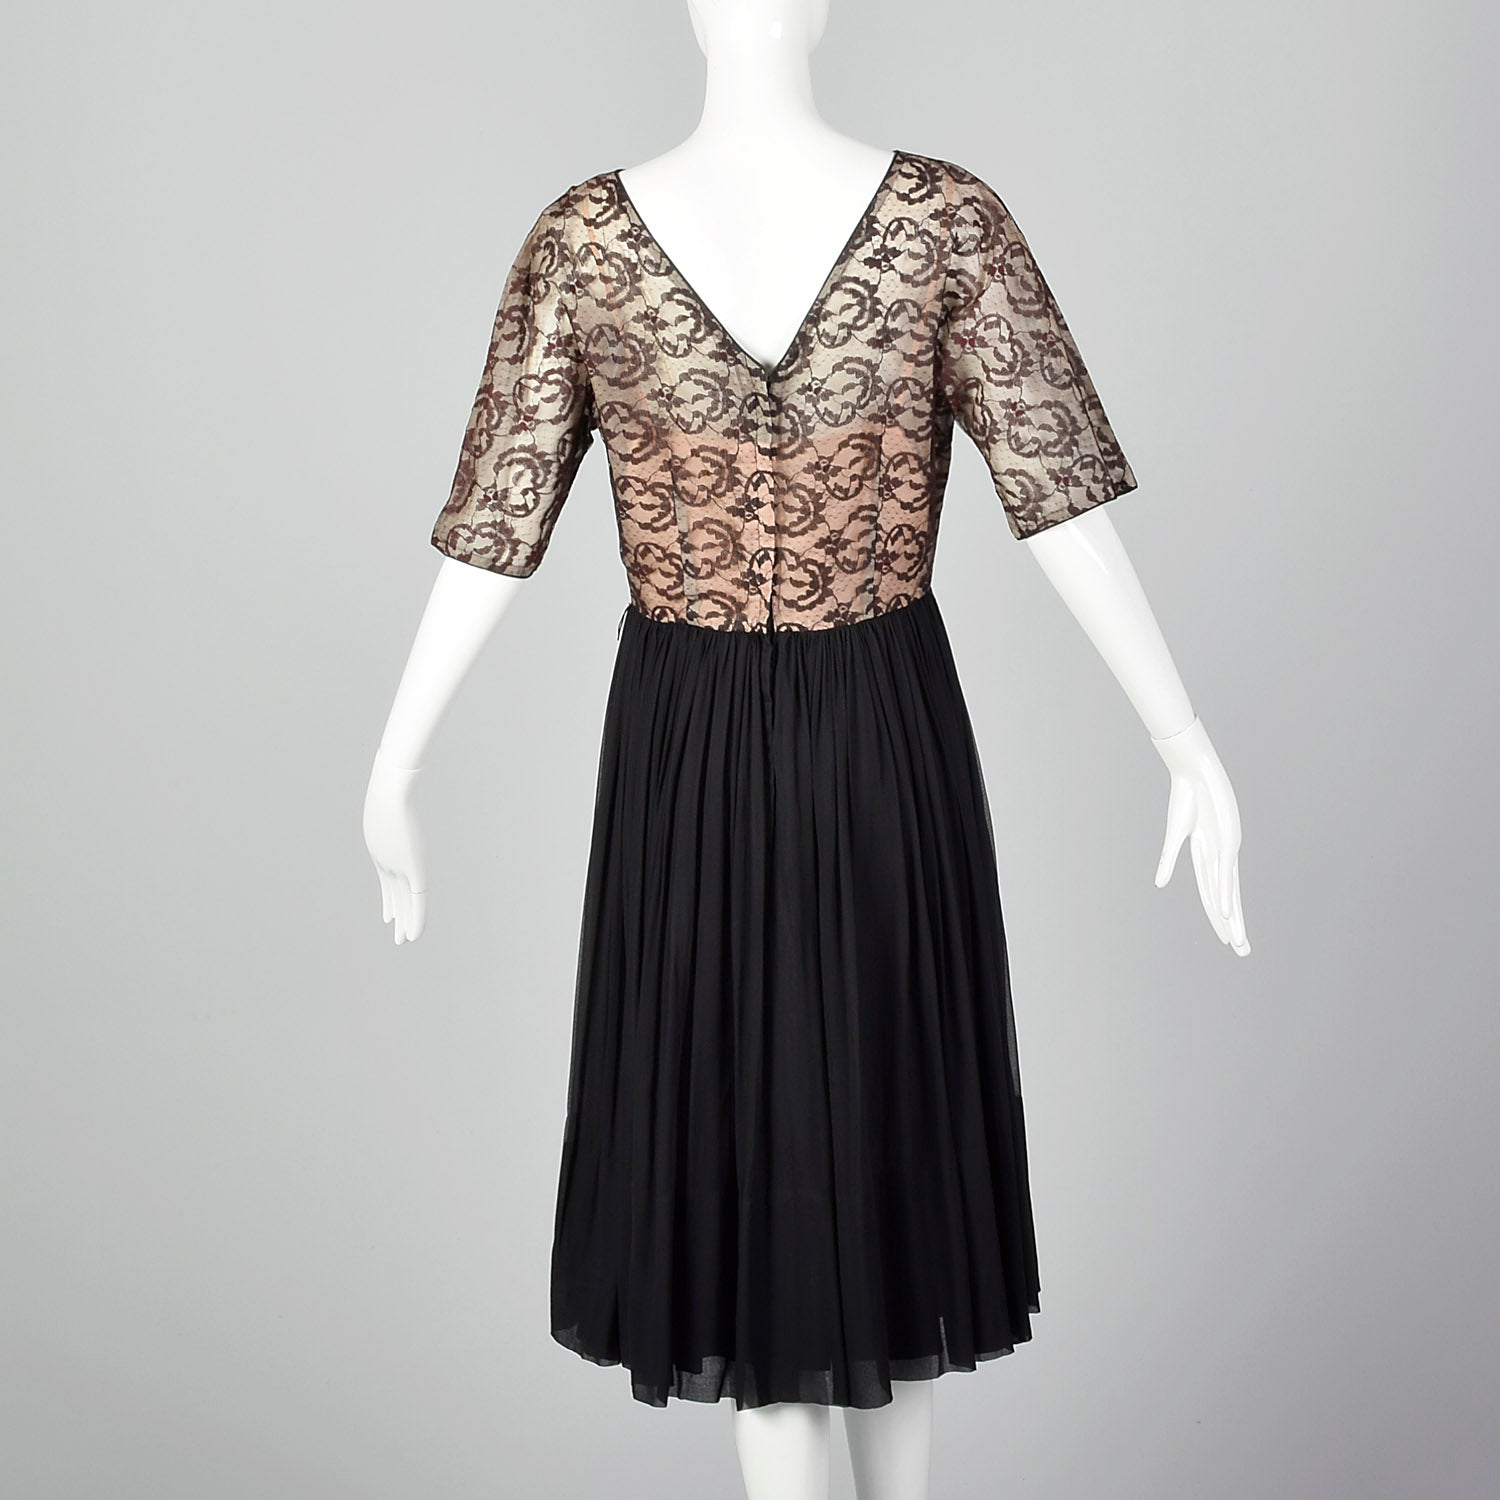 1950s Illusion Bodice Dress with Sheer Lace